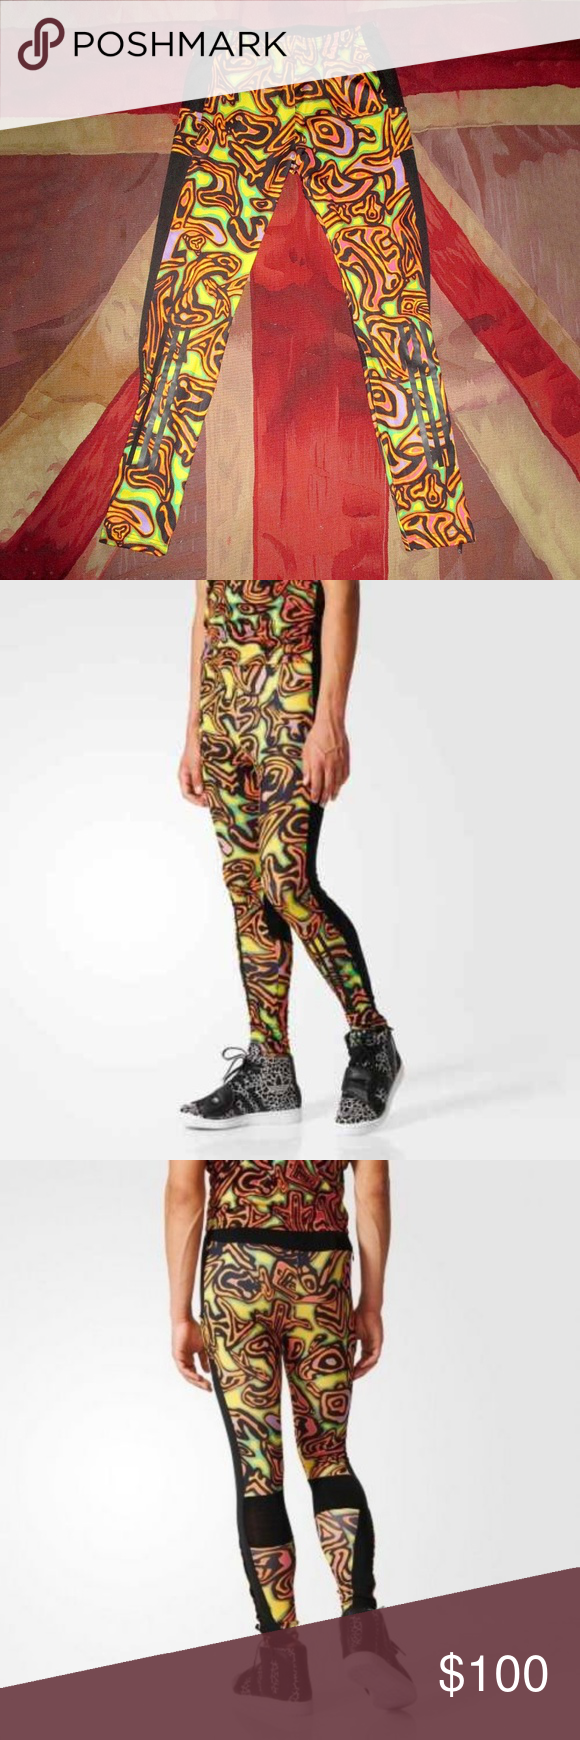 ce30a9d7a723a Adidas Originals x Jeremy Scott Psychedelic tights Adidas Originals x  Jeremy Scott Psychedelic Leggings Men s Obyo